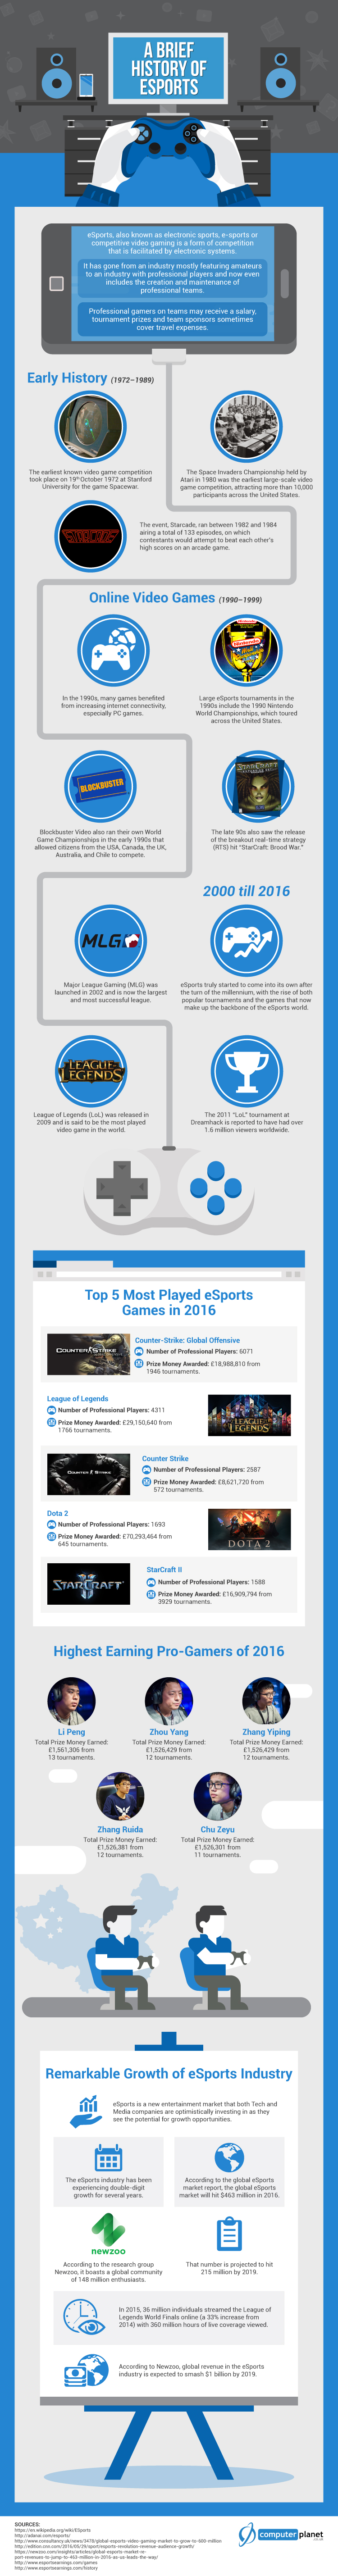 A Brief History of eSports